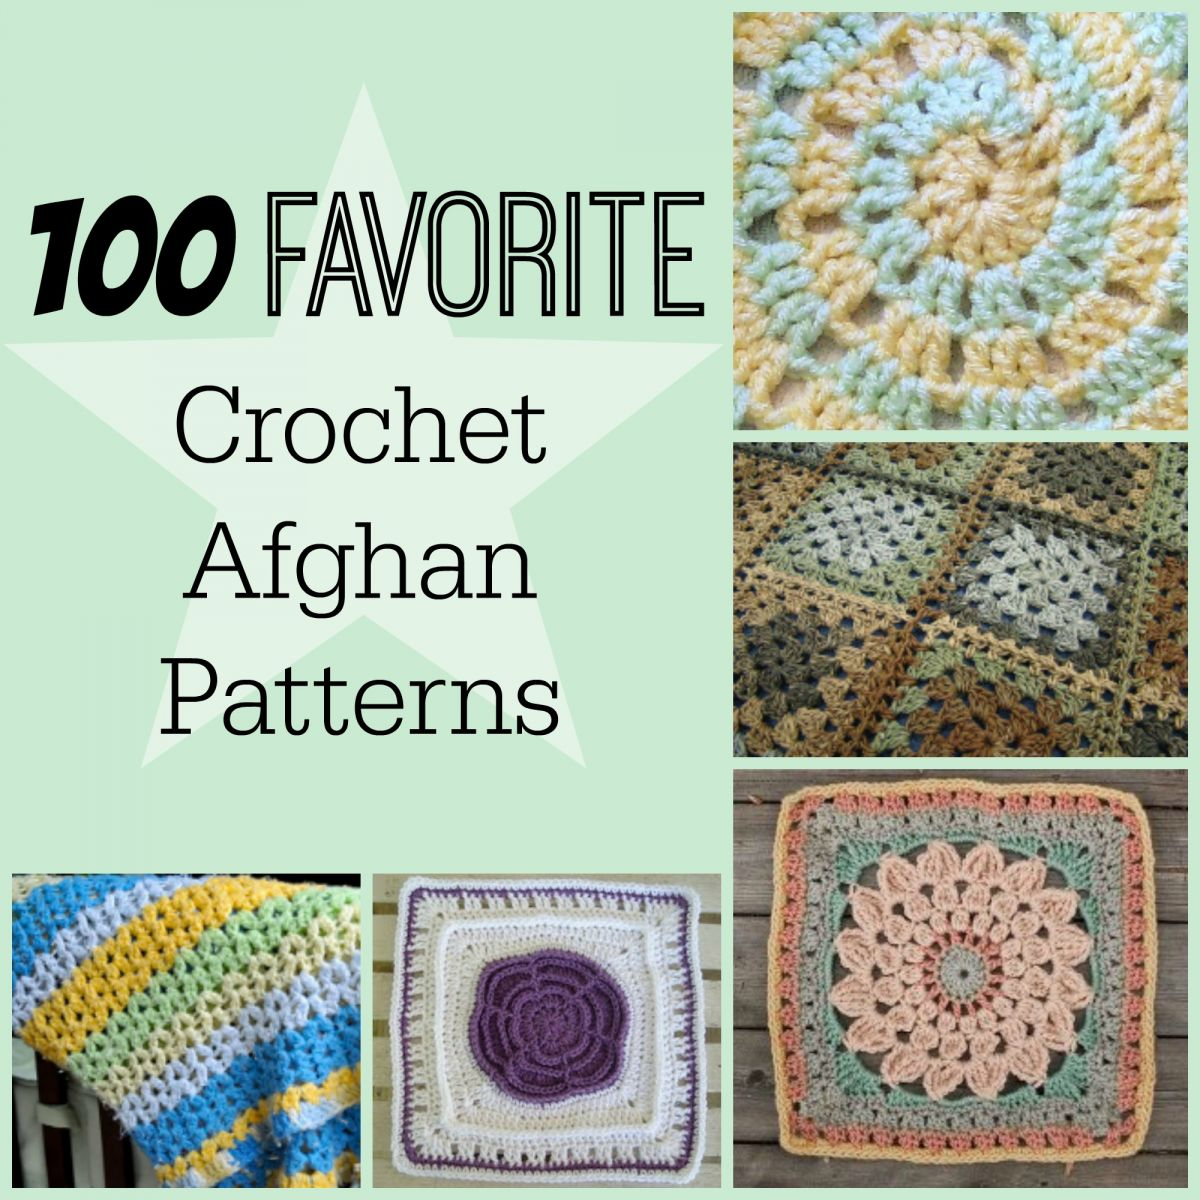 100 Favorite Crochet Afghan Patterns | AllFreeCrochetAfghanPatterns.com